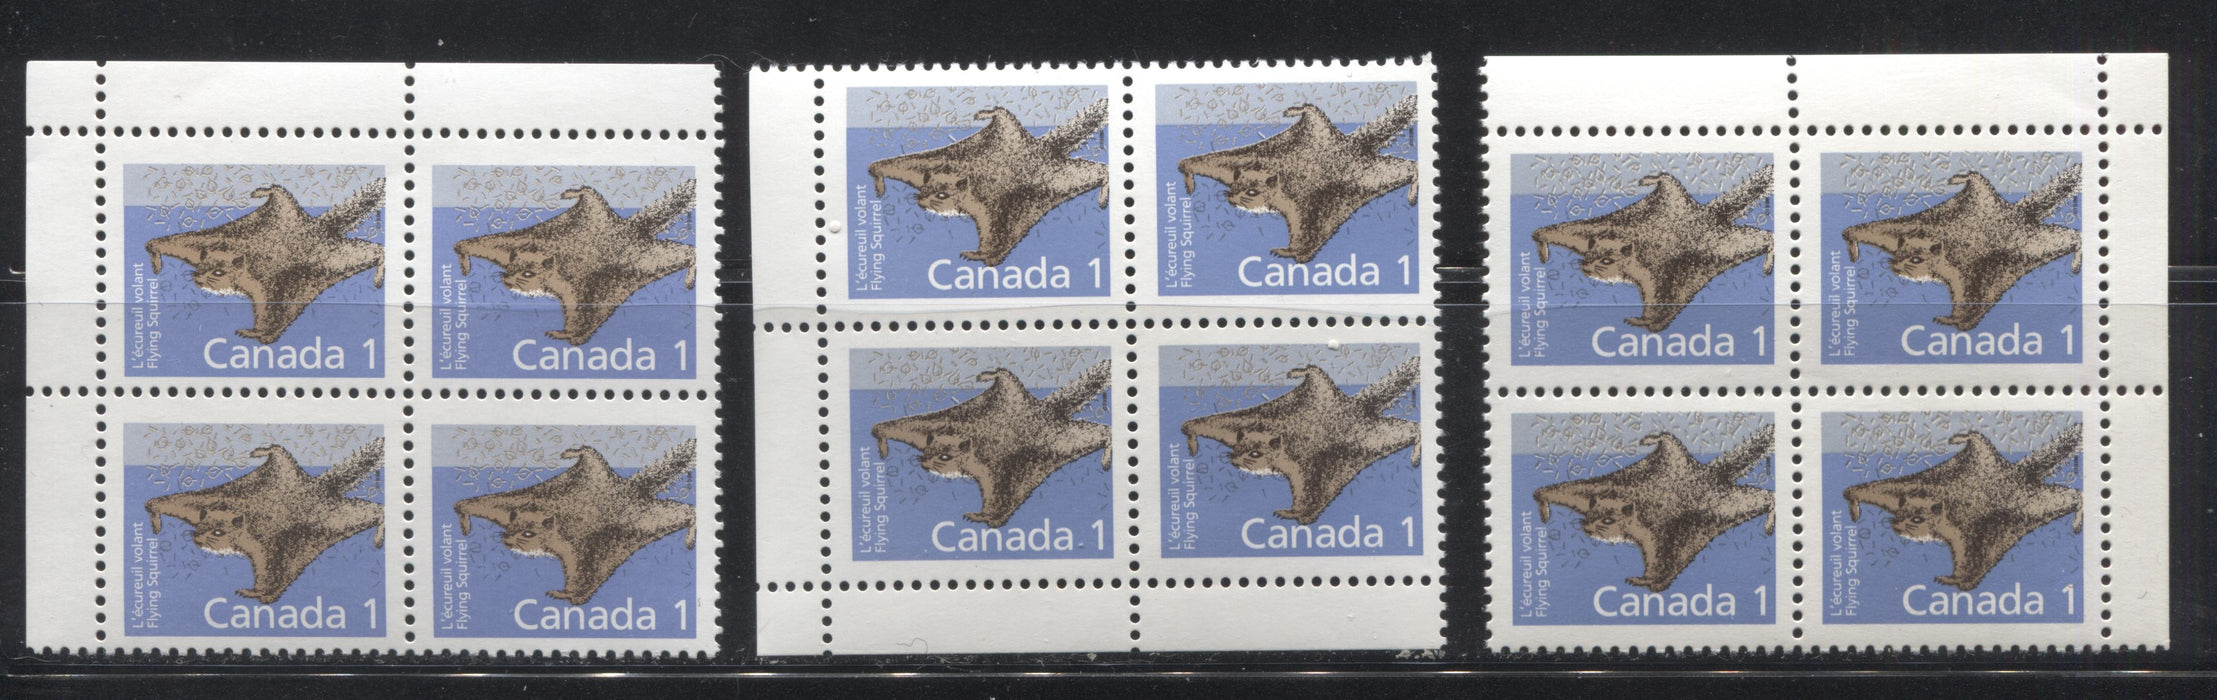 Canada #1155, 1155i 1c Flying Squirrel 1988-1991 Wildlife and Architecture Issue, a VFNH Group of 3 Field Stock Blocks on DF/DF Slater Paper and Dead/NF Coated Papers Paper